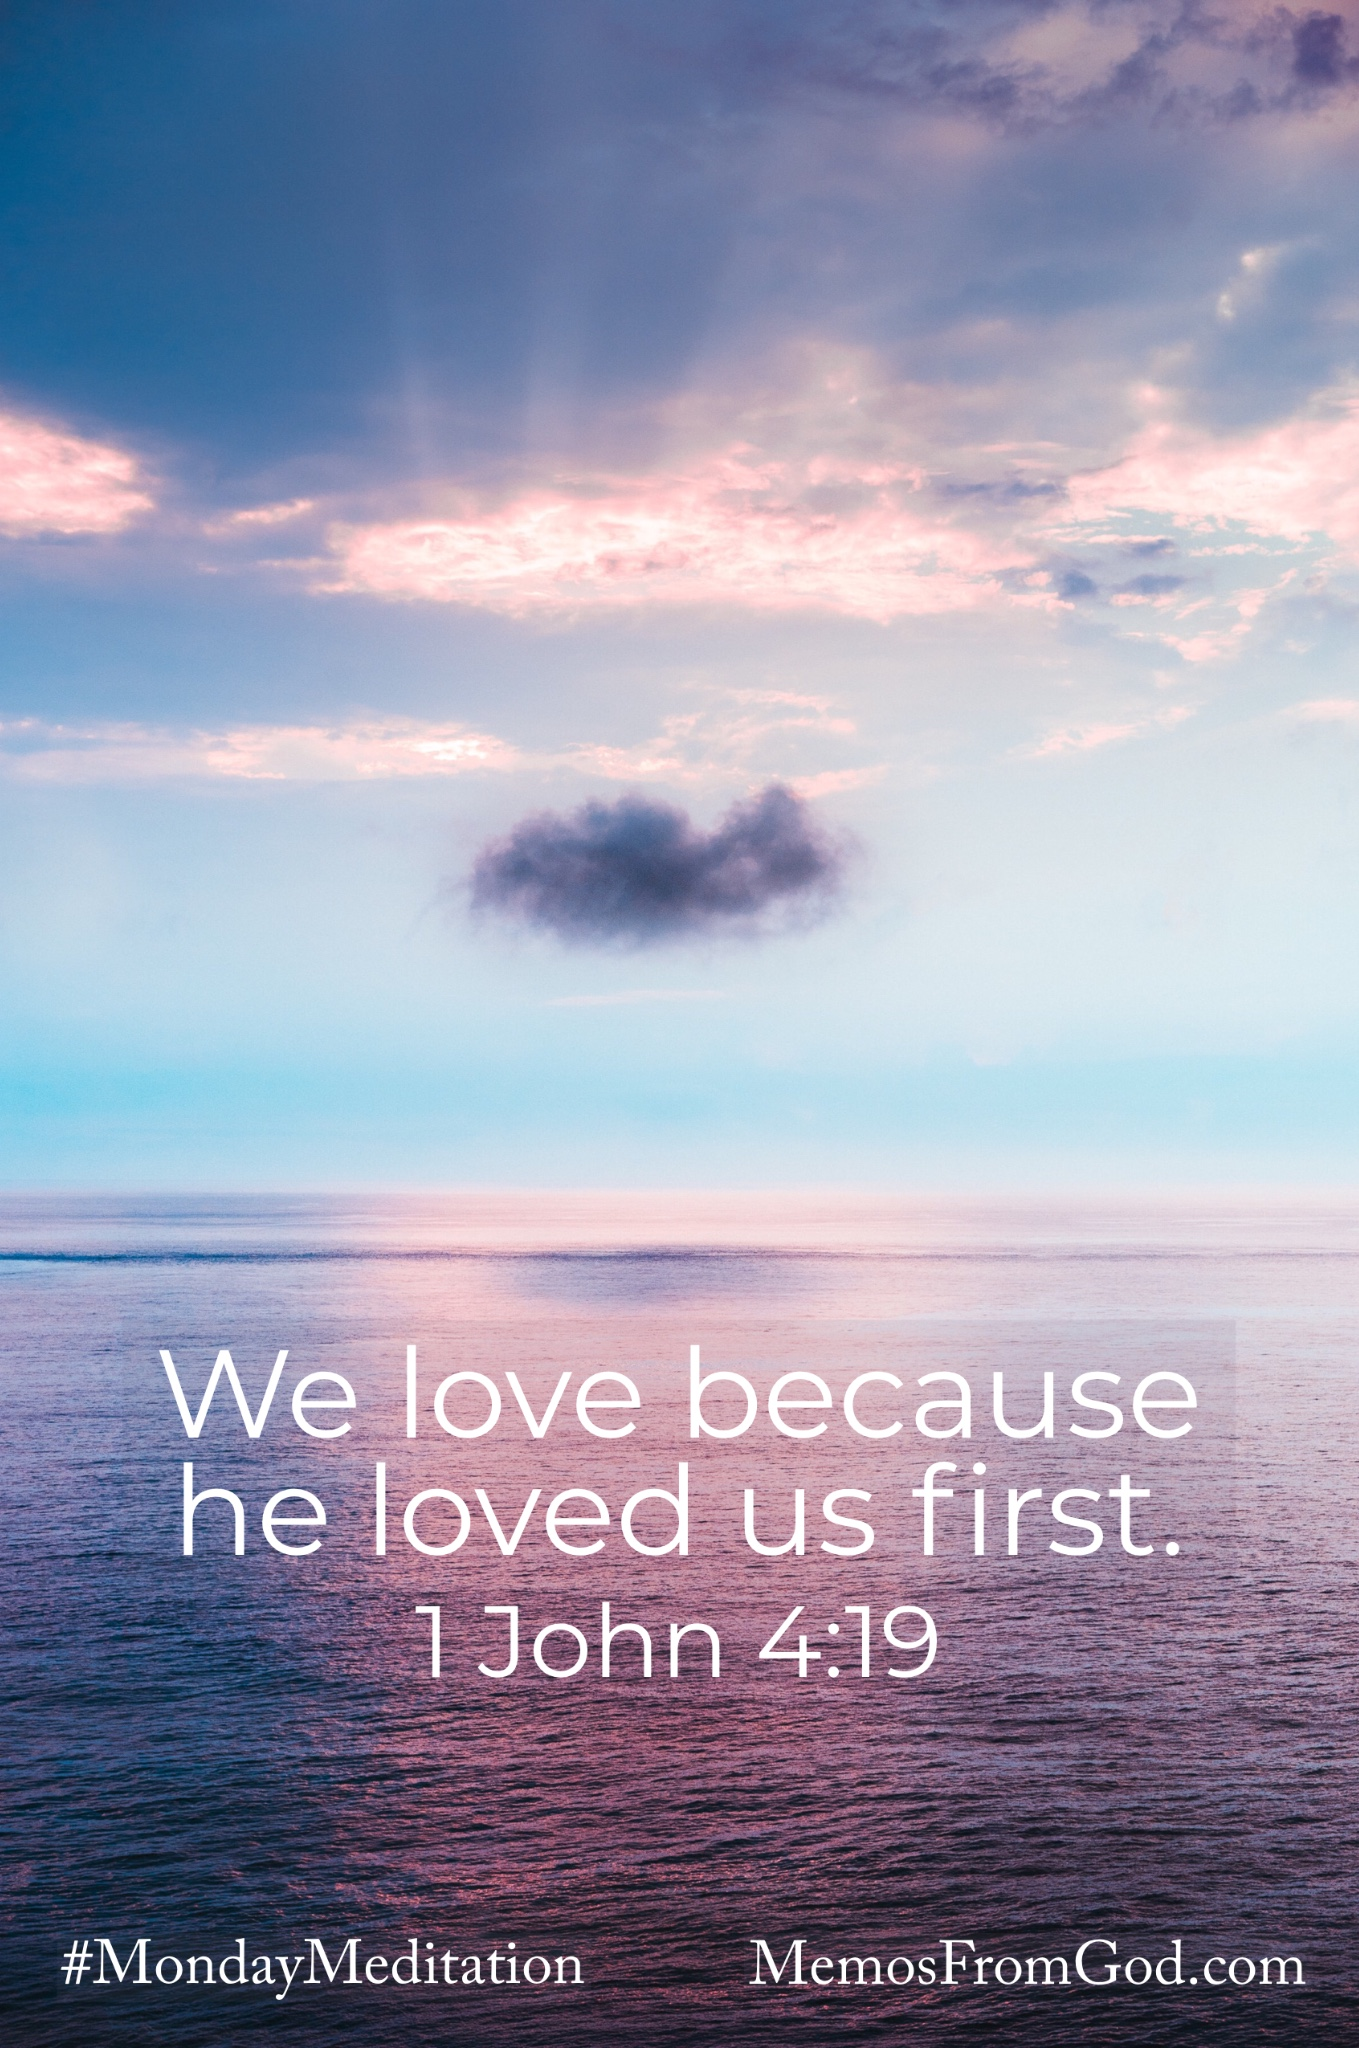 A body of water reflecting the blue and purple sky with the shadow of one small, dark cloud below the rays of sun shining through a brighter cloud. Caption: We love because he loved us first. 1 John 4:19